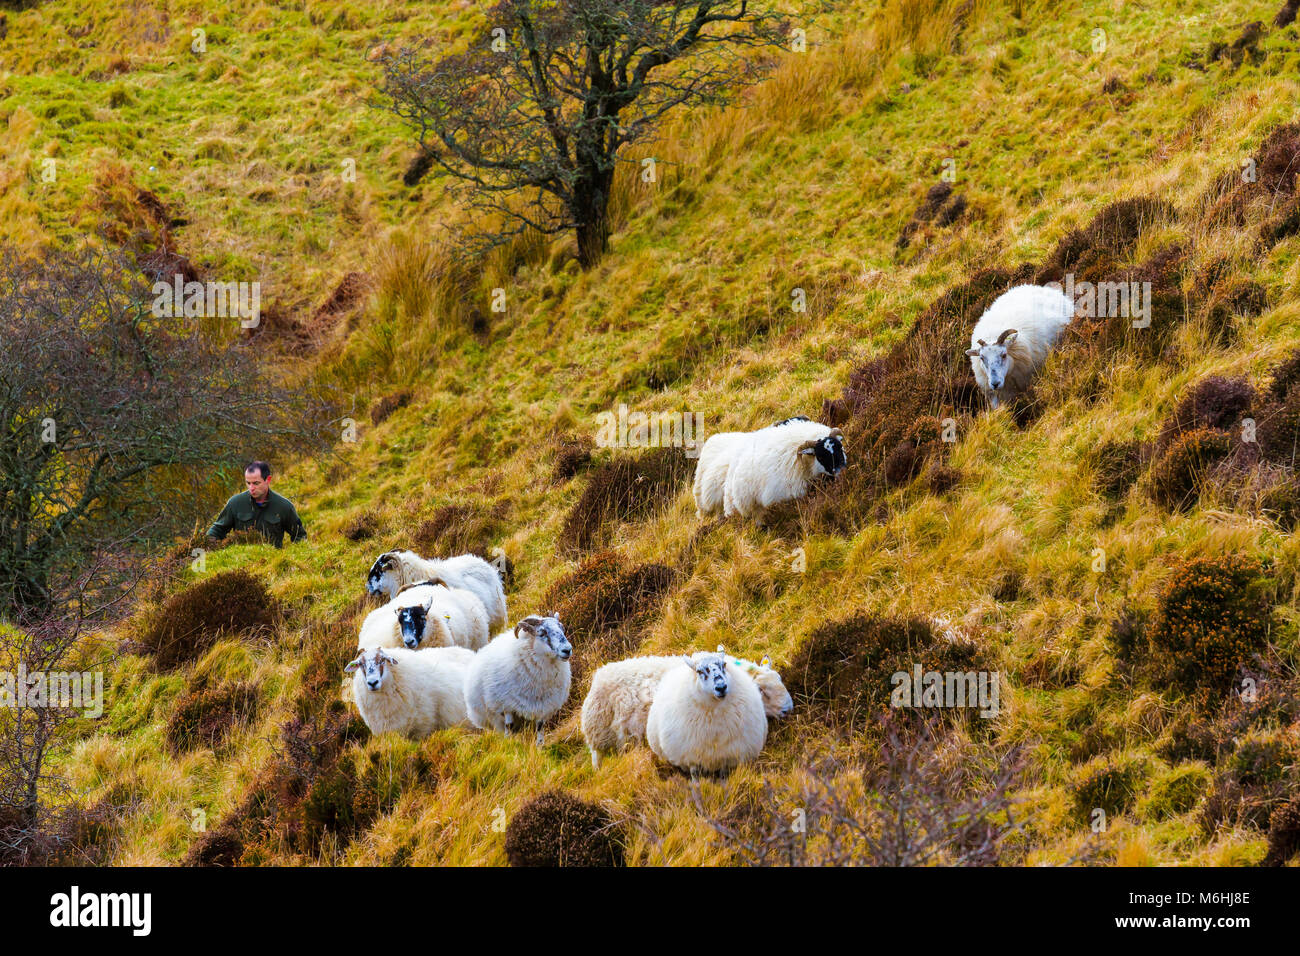 A shepherd and his sheep in the hills on the Isle of Skye. - Stock Image